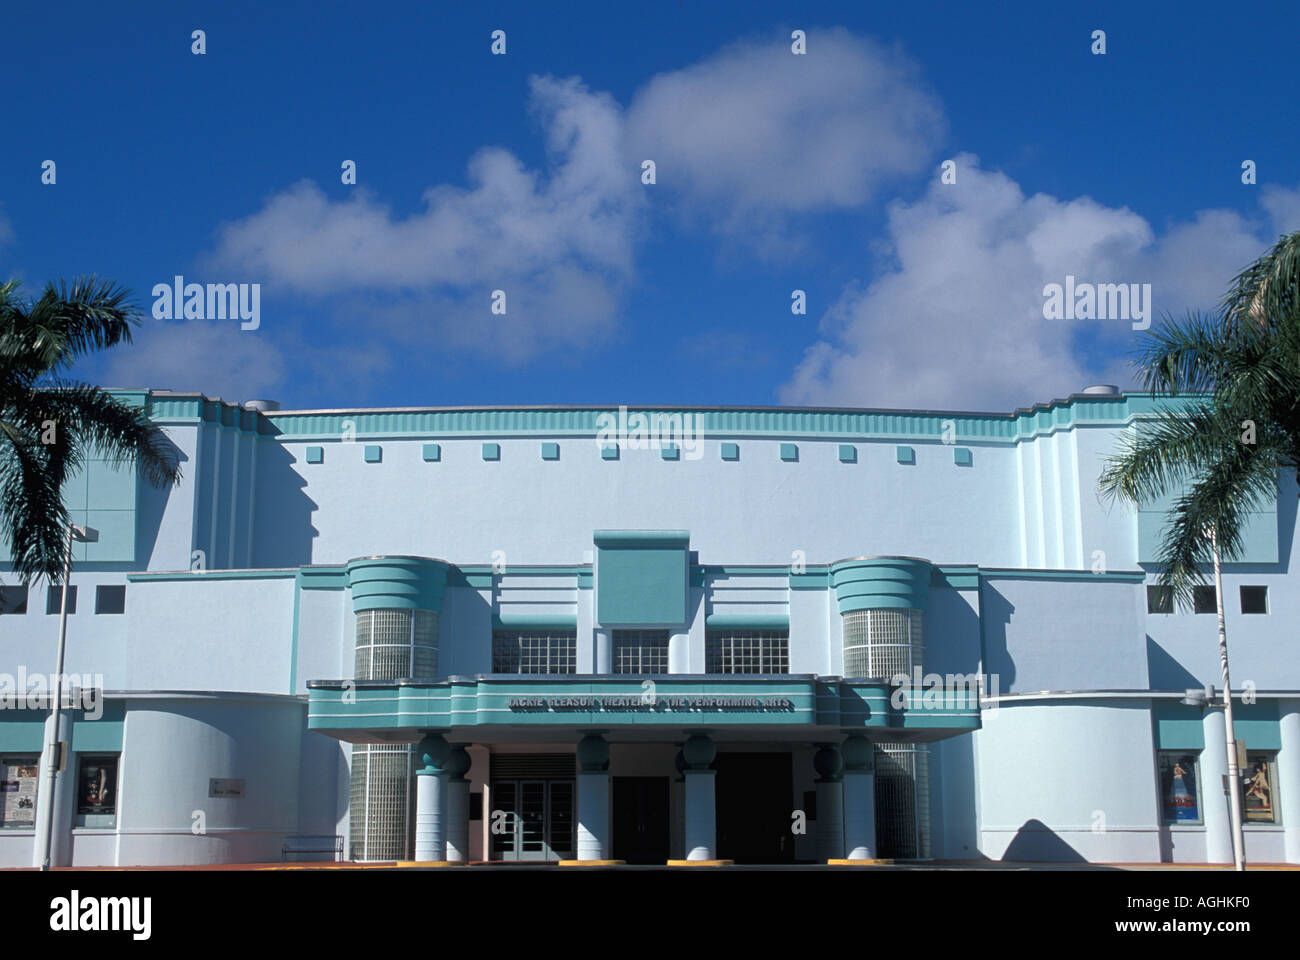 Miami Florida FL South Beach Classic Art Deco Architecture Jackie Gleason Theater of the Performing Arts - Stock Image